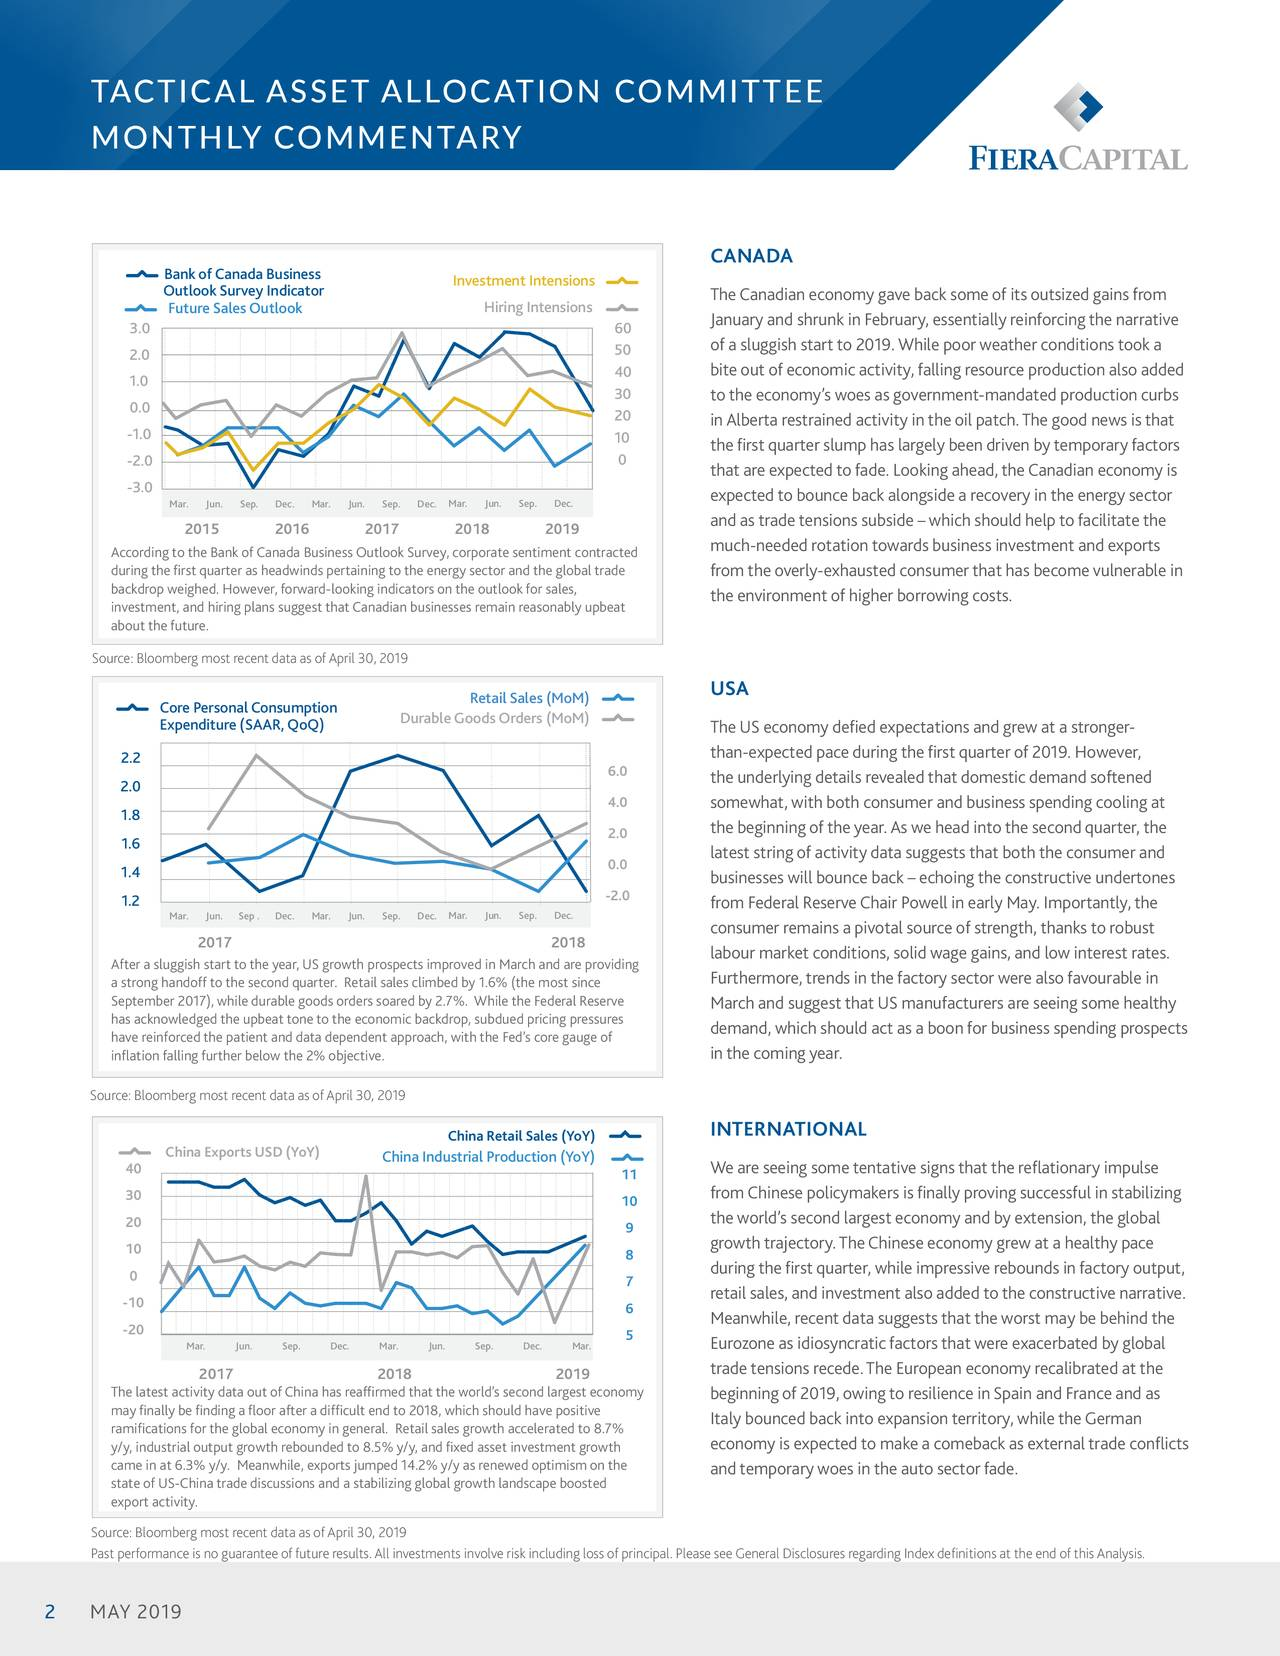 MONTHLY COMMENTARY CANADA Bank of Canada Business Investment Intensions Outlook Survey Indicator The Canadian economy gave back some of its outsized gains from Future Sales Outlook Hiring Intensions January and shrunk in February, essentially reinforcing the narrative 3.0 60 2.0 50 of a sluggish start to 2019. While poor weather conditions took a 40 bite out of economic activity, falling resource production also added 1.0 30 to the economy's woes as government-mandated production curbs 0.0 20 inAlberta restrained activity in the oil patch.The good news is that -1.0 10 the first quarter slump has largely been driven by temporary factors 0 -2.0 that are expected to fade. Looking ahead, the Canadian economy is -3.0 Mar. Jun. Sep. Dec. Mar. Jun. Sep. Dec. Mar. Jun. Sep. Dec. expected to bounce back alongside a recovery in the energy sector and as trade tensions subside – which should help to facilitate the much-needed rotation towards business investment and exports According to the Bank ofCanada BusinessOutlook Survey, corporate sentimeSnt contracted during thefirst quarter as headwindSs pertaining to the energy sector and the global trade from the overly-exhausted consumer that has become vulnerable in backdrop weighed. However,forward-looking indicatoSrs on the outlookfor sales, investment, and hiring plans Ssuggest thatCanadian businesses Sremain reasonably upbeat the environment of higher borrowing costs. about thefuture. Source: Bloomberg most recent data as ofApril 30, 2019 USA Core Personal Consumption Retail Sales (MoM) Expenditure (SAAR, QoQ) Durable Goods Orders (MoM) The US economy defied expectations and grew at a stronger- than-expected pace during the first quarter of 2019. However, 2.2 . the underlying details revealed that domestic demand softened 2.0 1.8 . somewhat, with both consumer and business spending cooling at the beginning of the year. As we head into the second quarter, the 1.6 . latest string of activity data suggests that both the consumer a